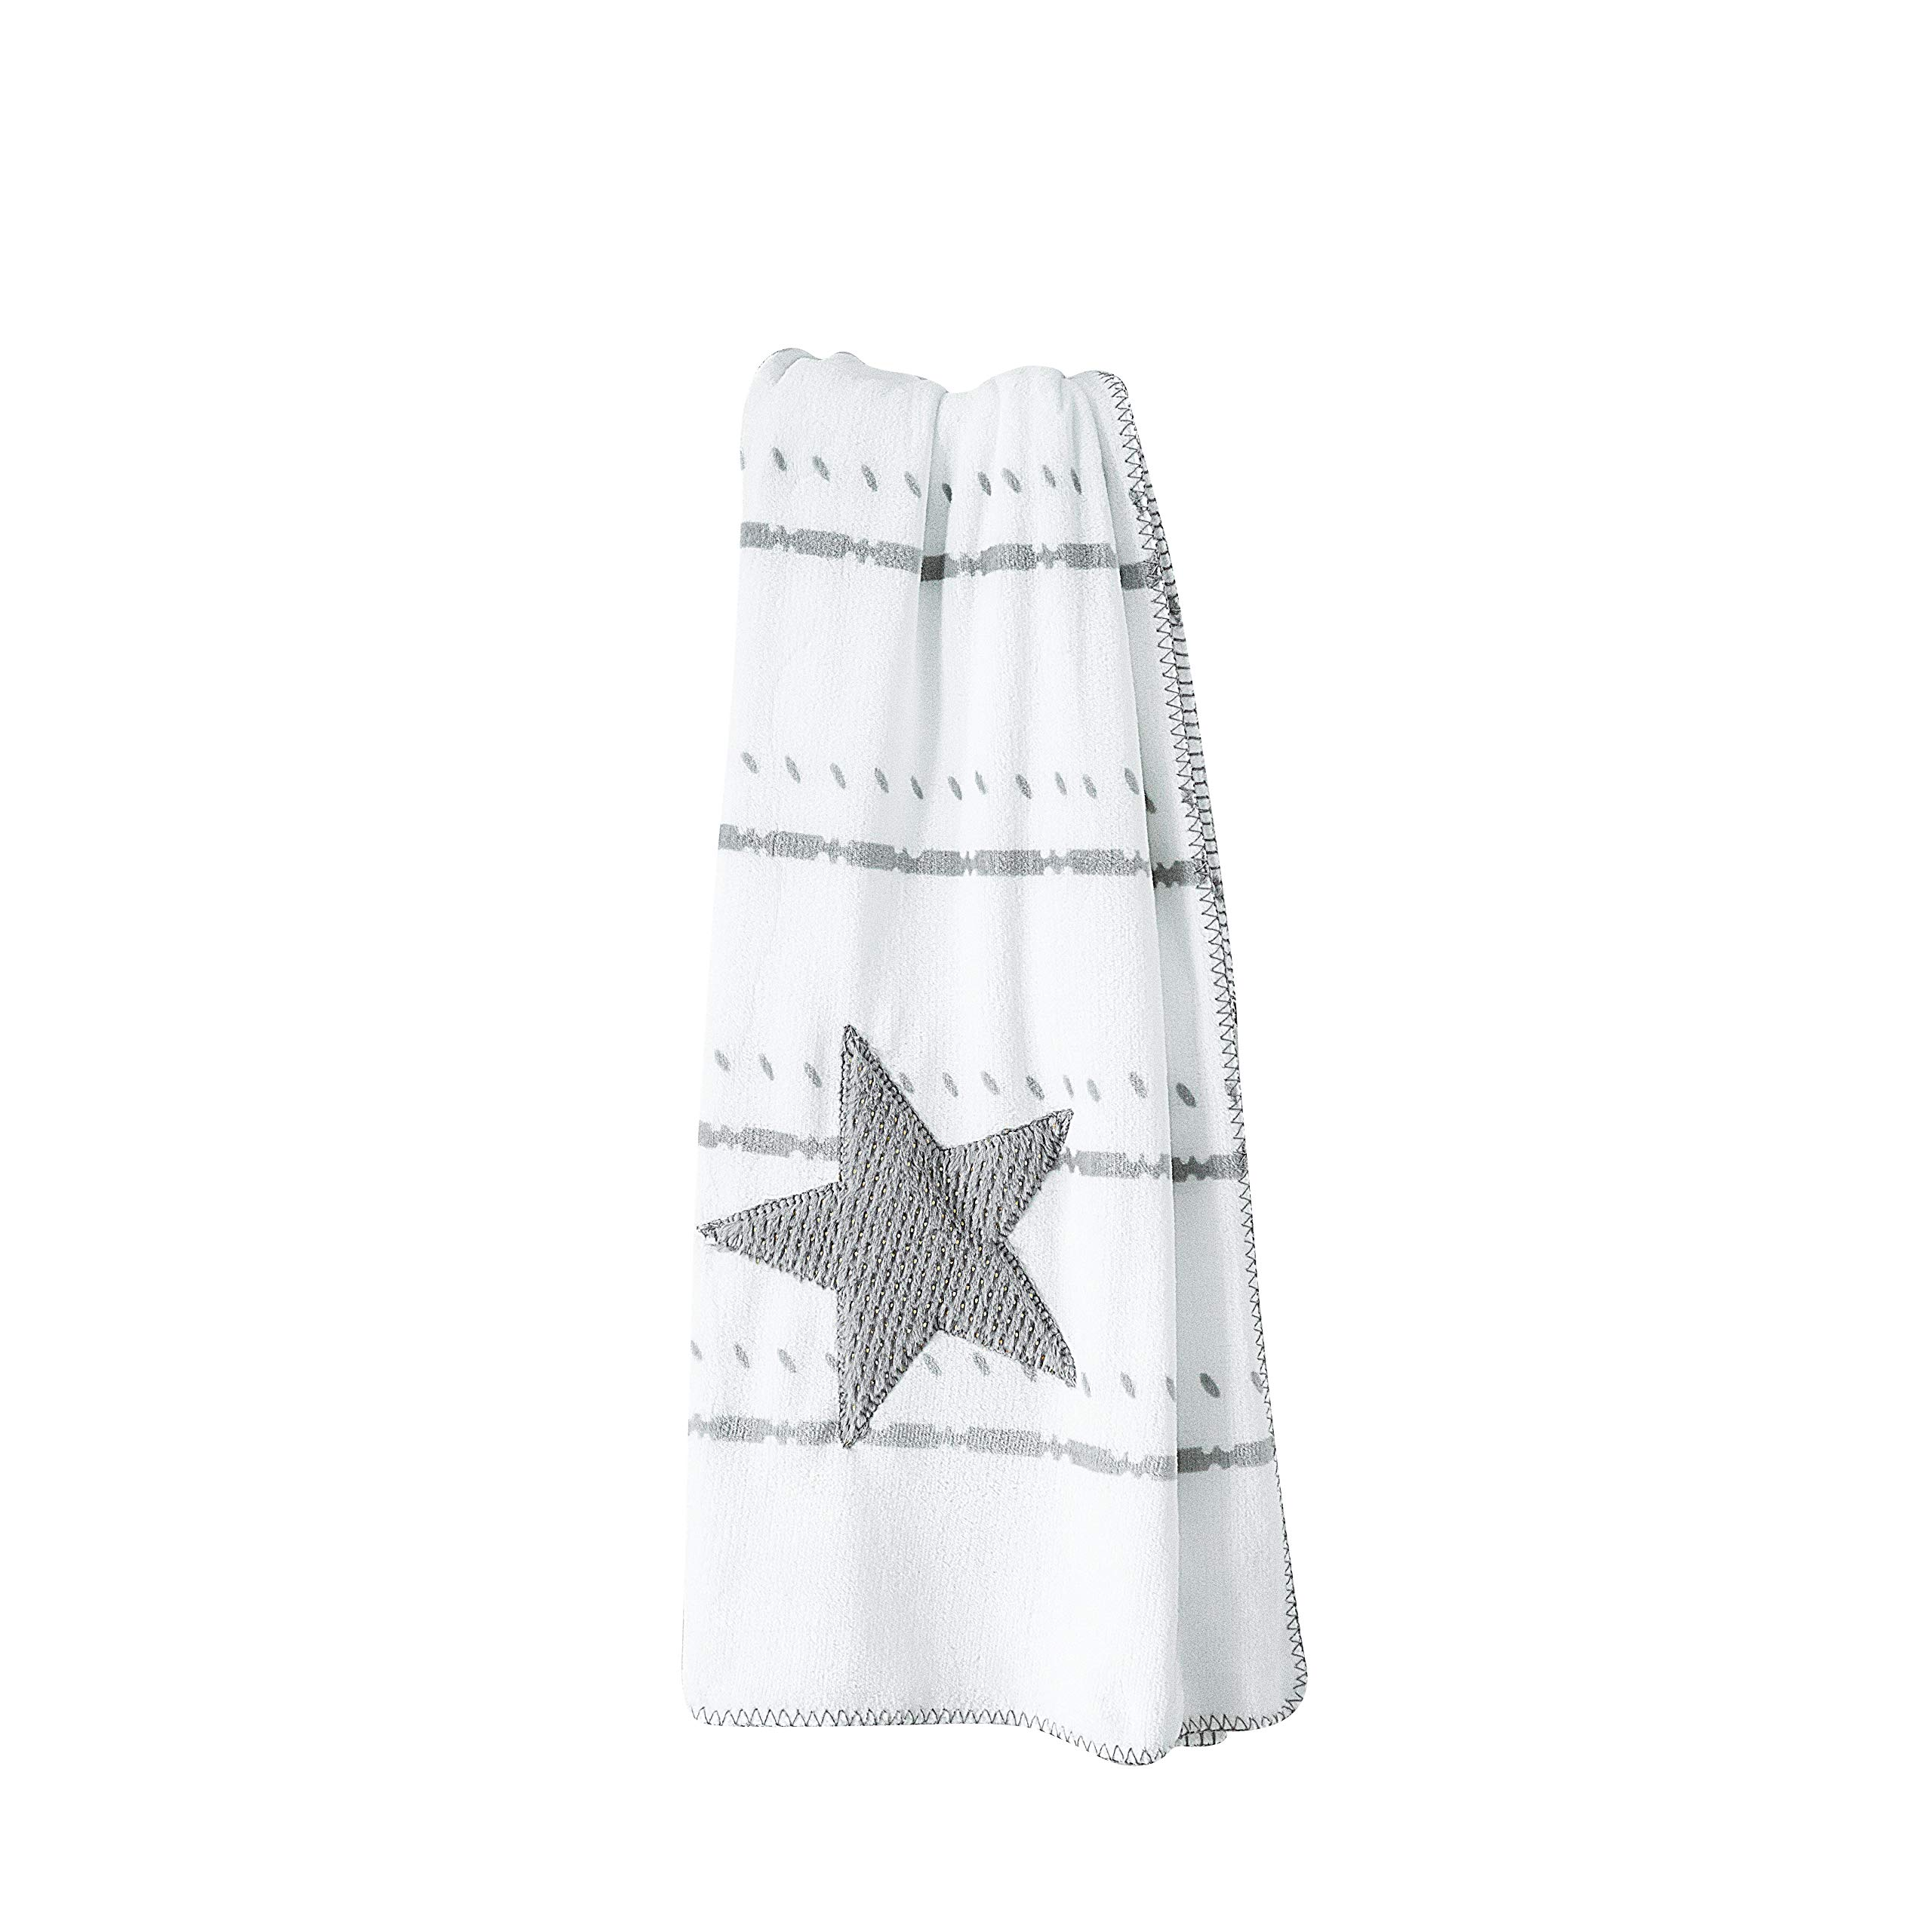 ANVI HOME Ultra Plush Boho Throw/Star Stitched Pattern Warm Velvety Cozy Super Soft/Perfect for Bed, Couch, Travel, All Season Use, Easy Care - 50X60 Inch - Grey